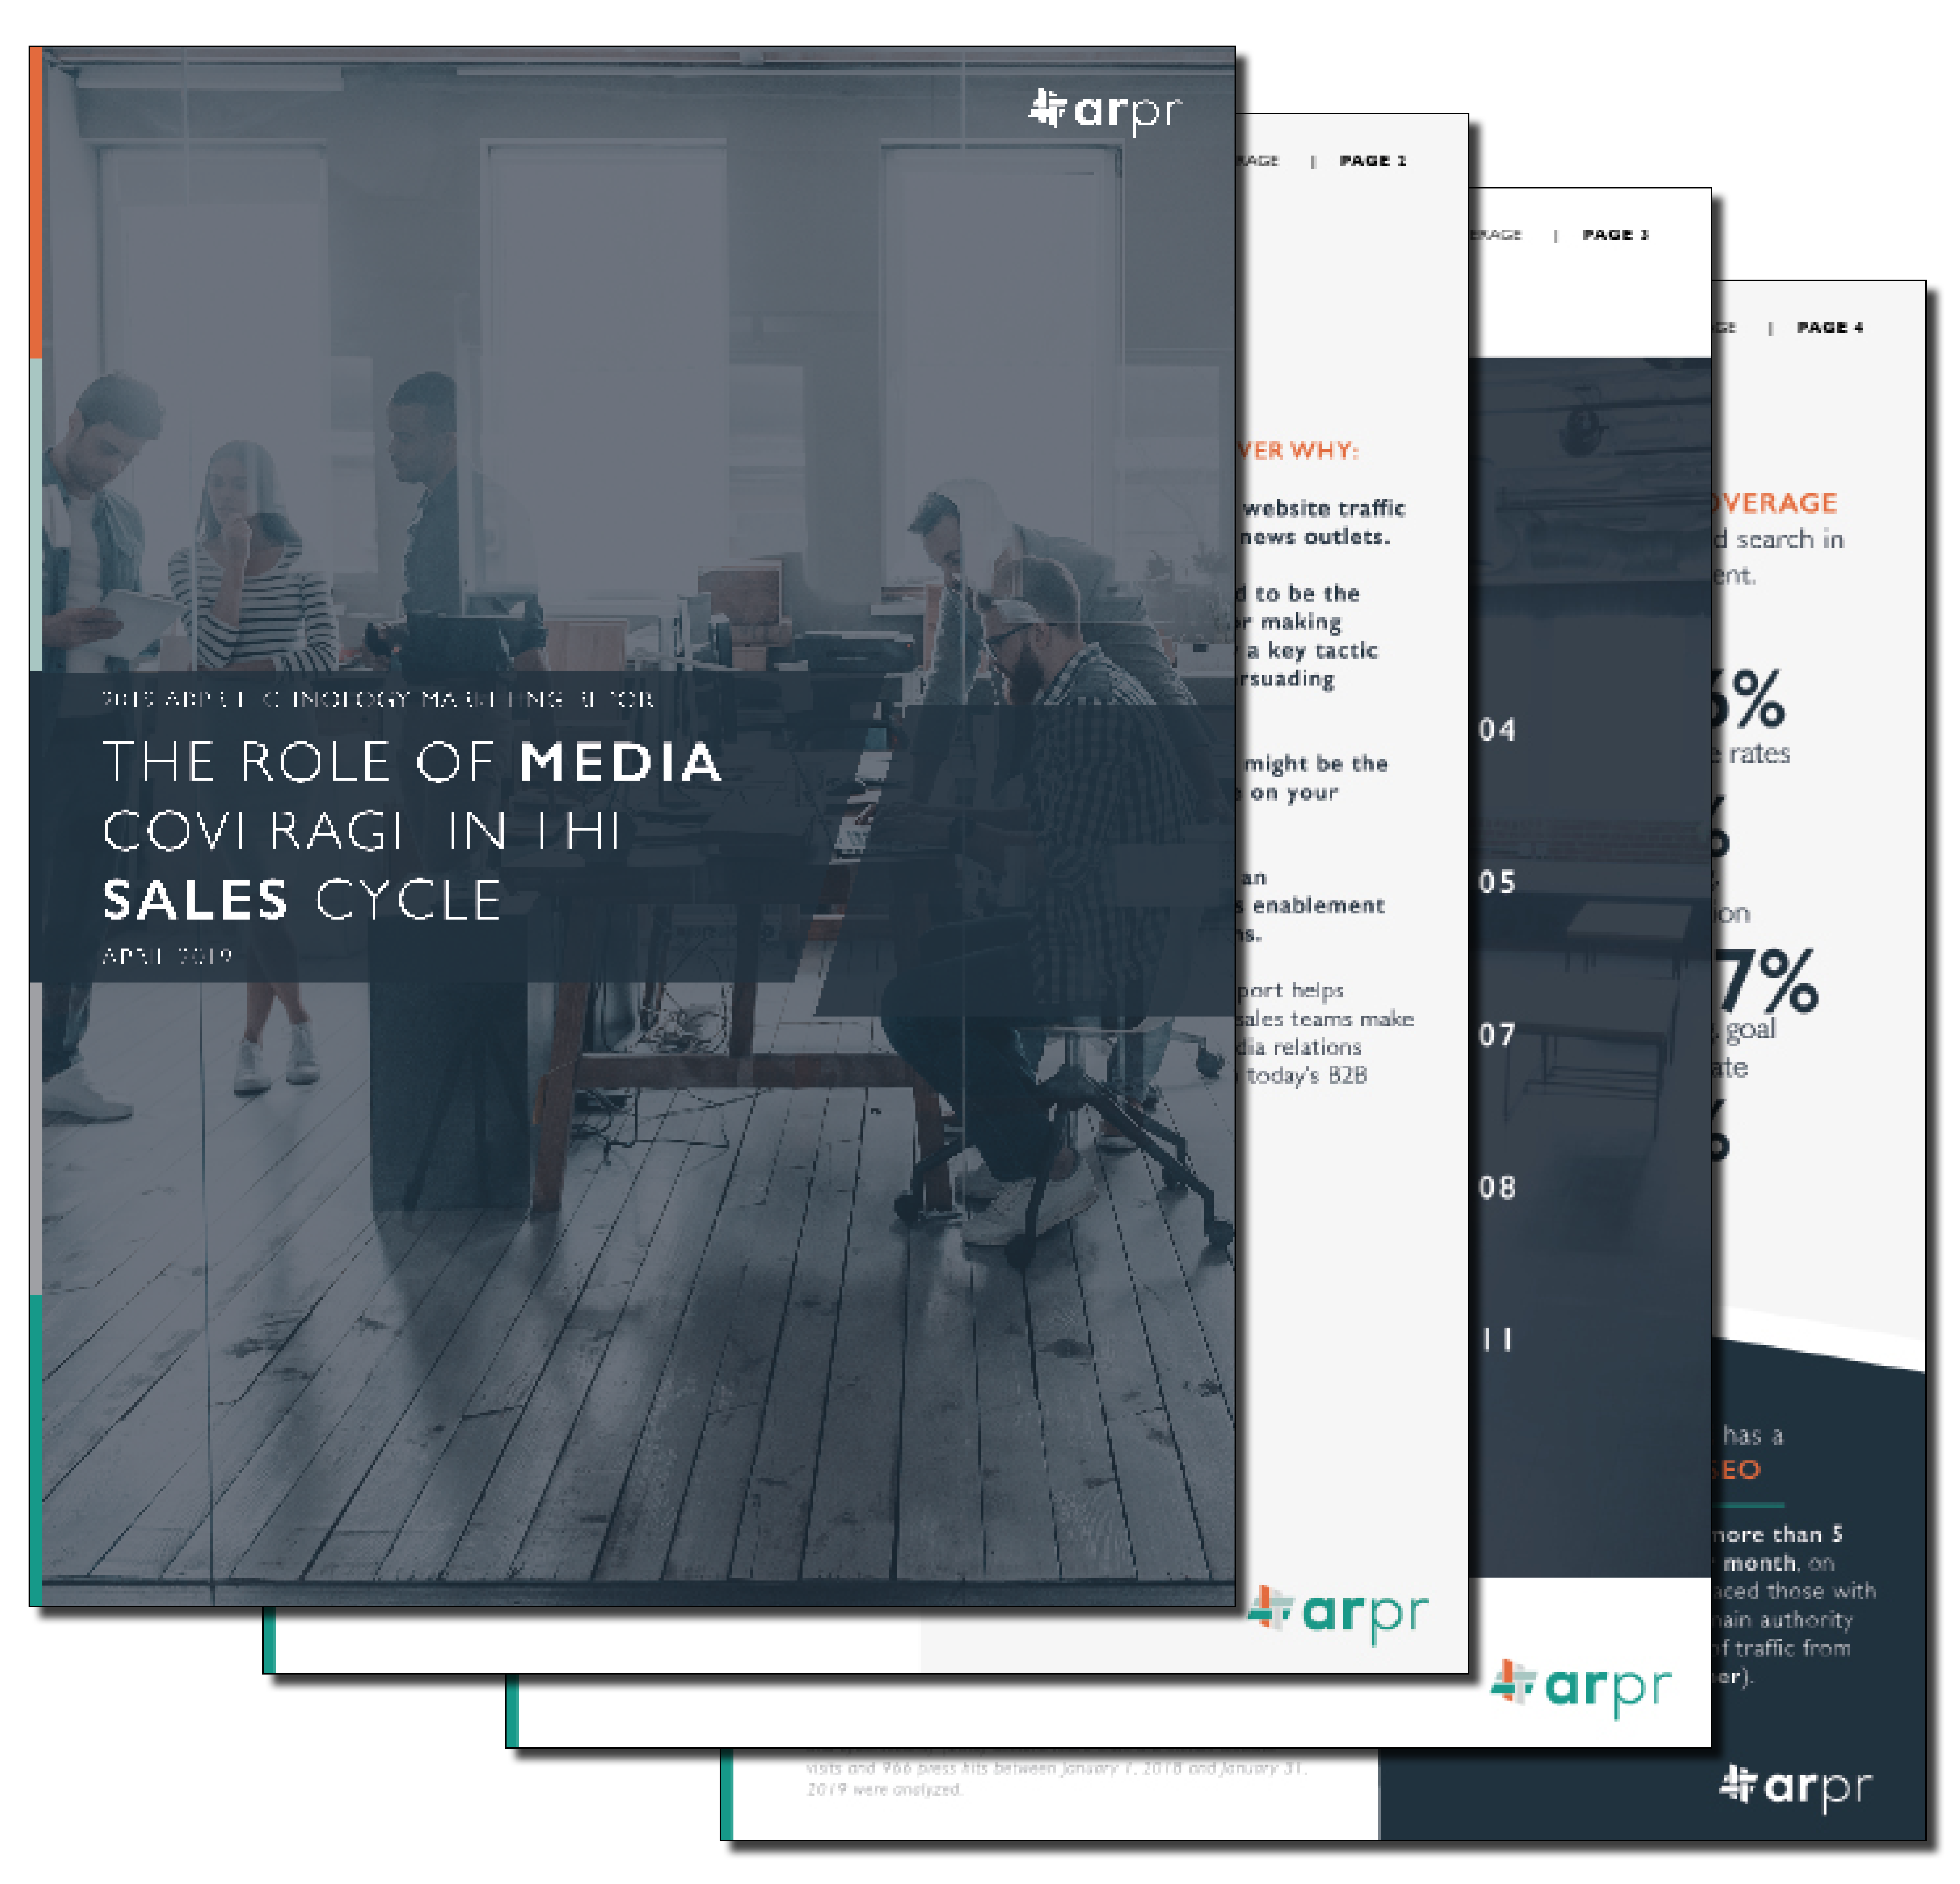 The Role of Media in the Sales Cycle